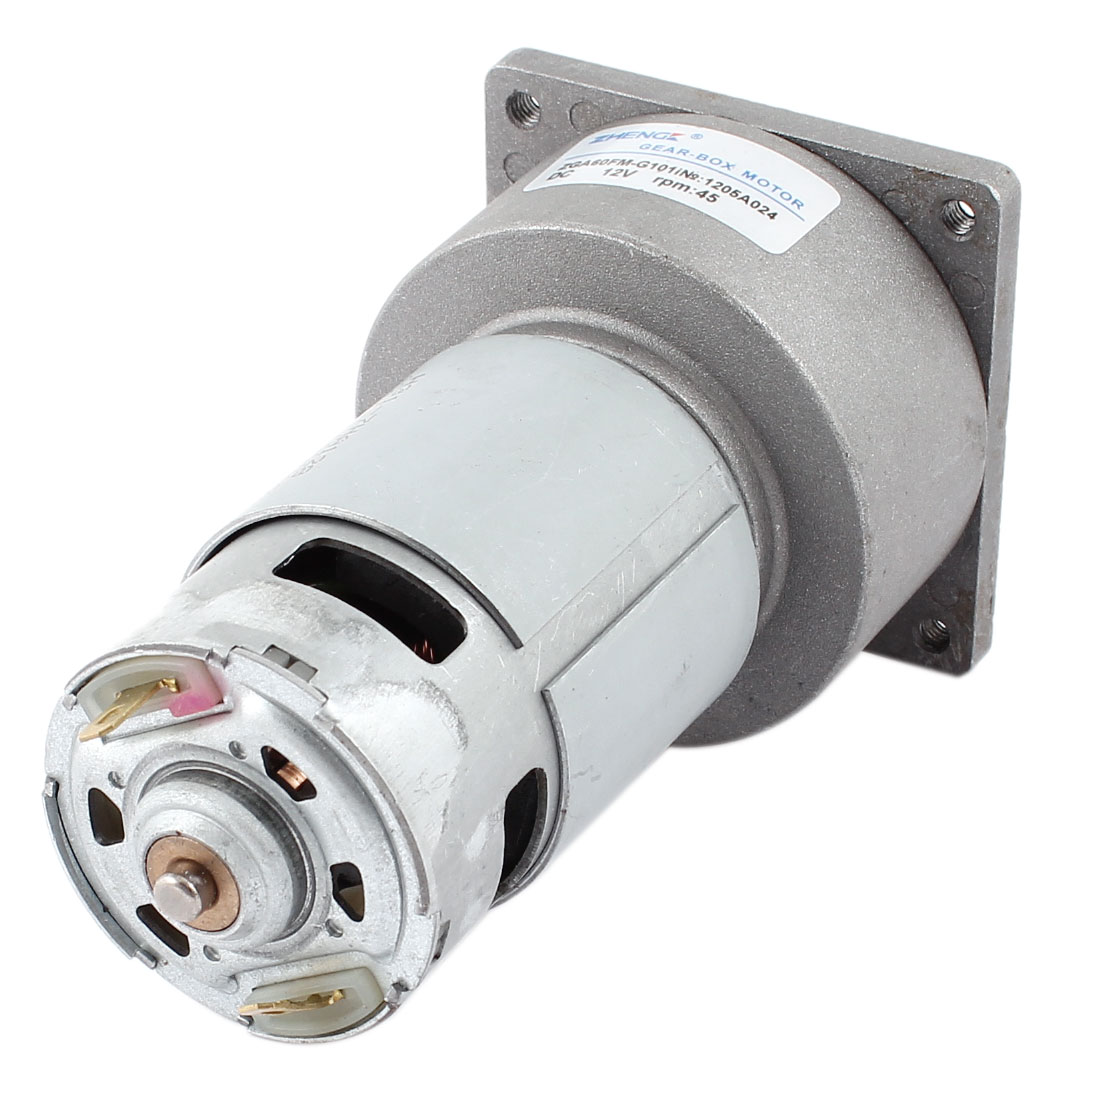 DC 12V 4600r/Min Flange Mount High Torque Magnetic Electric Geared Motor